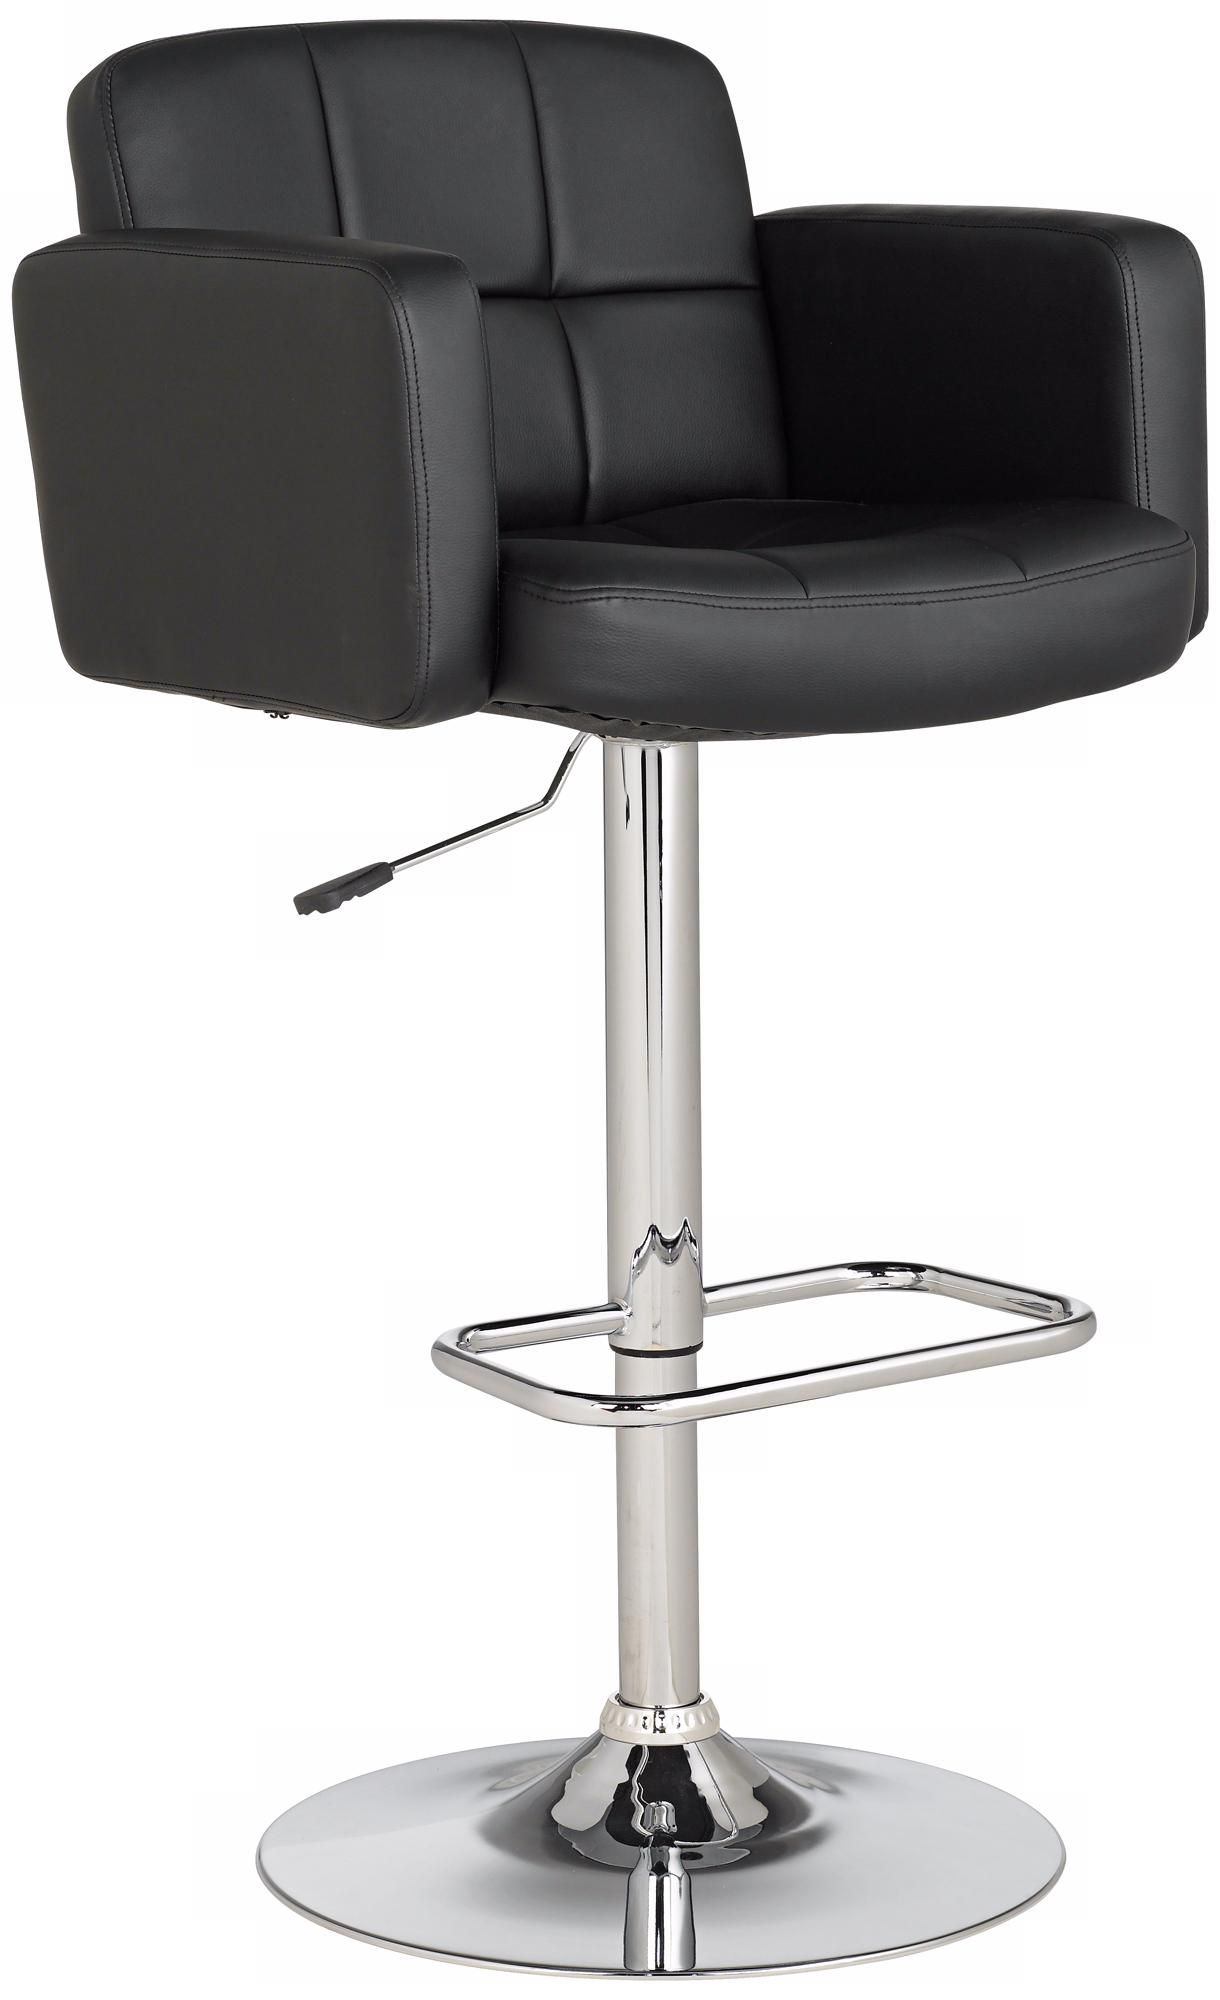 Swell Trek Large Black Faux Leather Adjustable Swivel Bar Stool Gmtry Best Dining Table And Chair Ideas Images Gmtryco